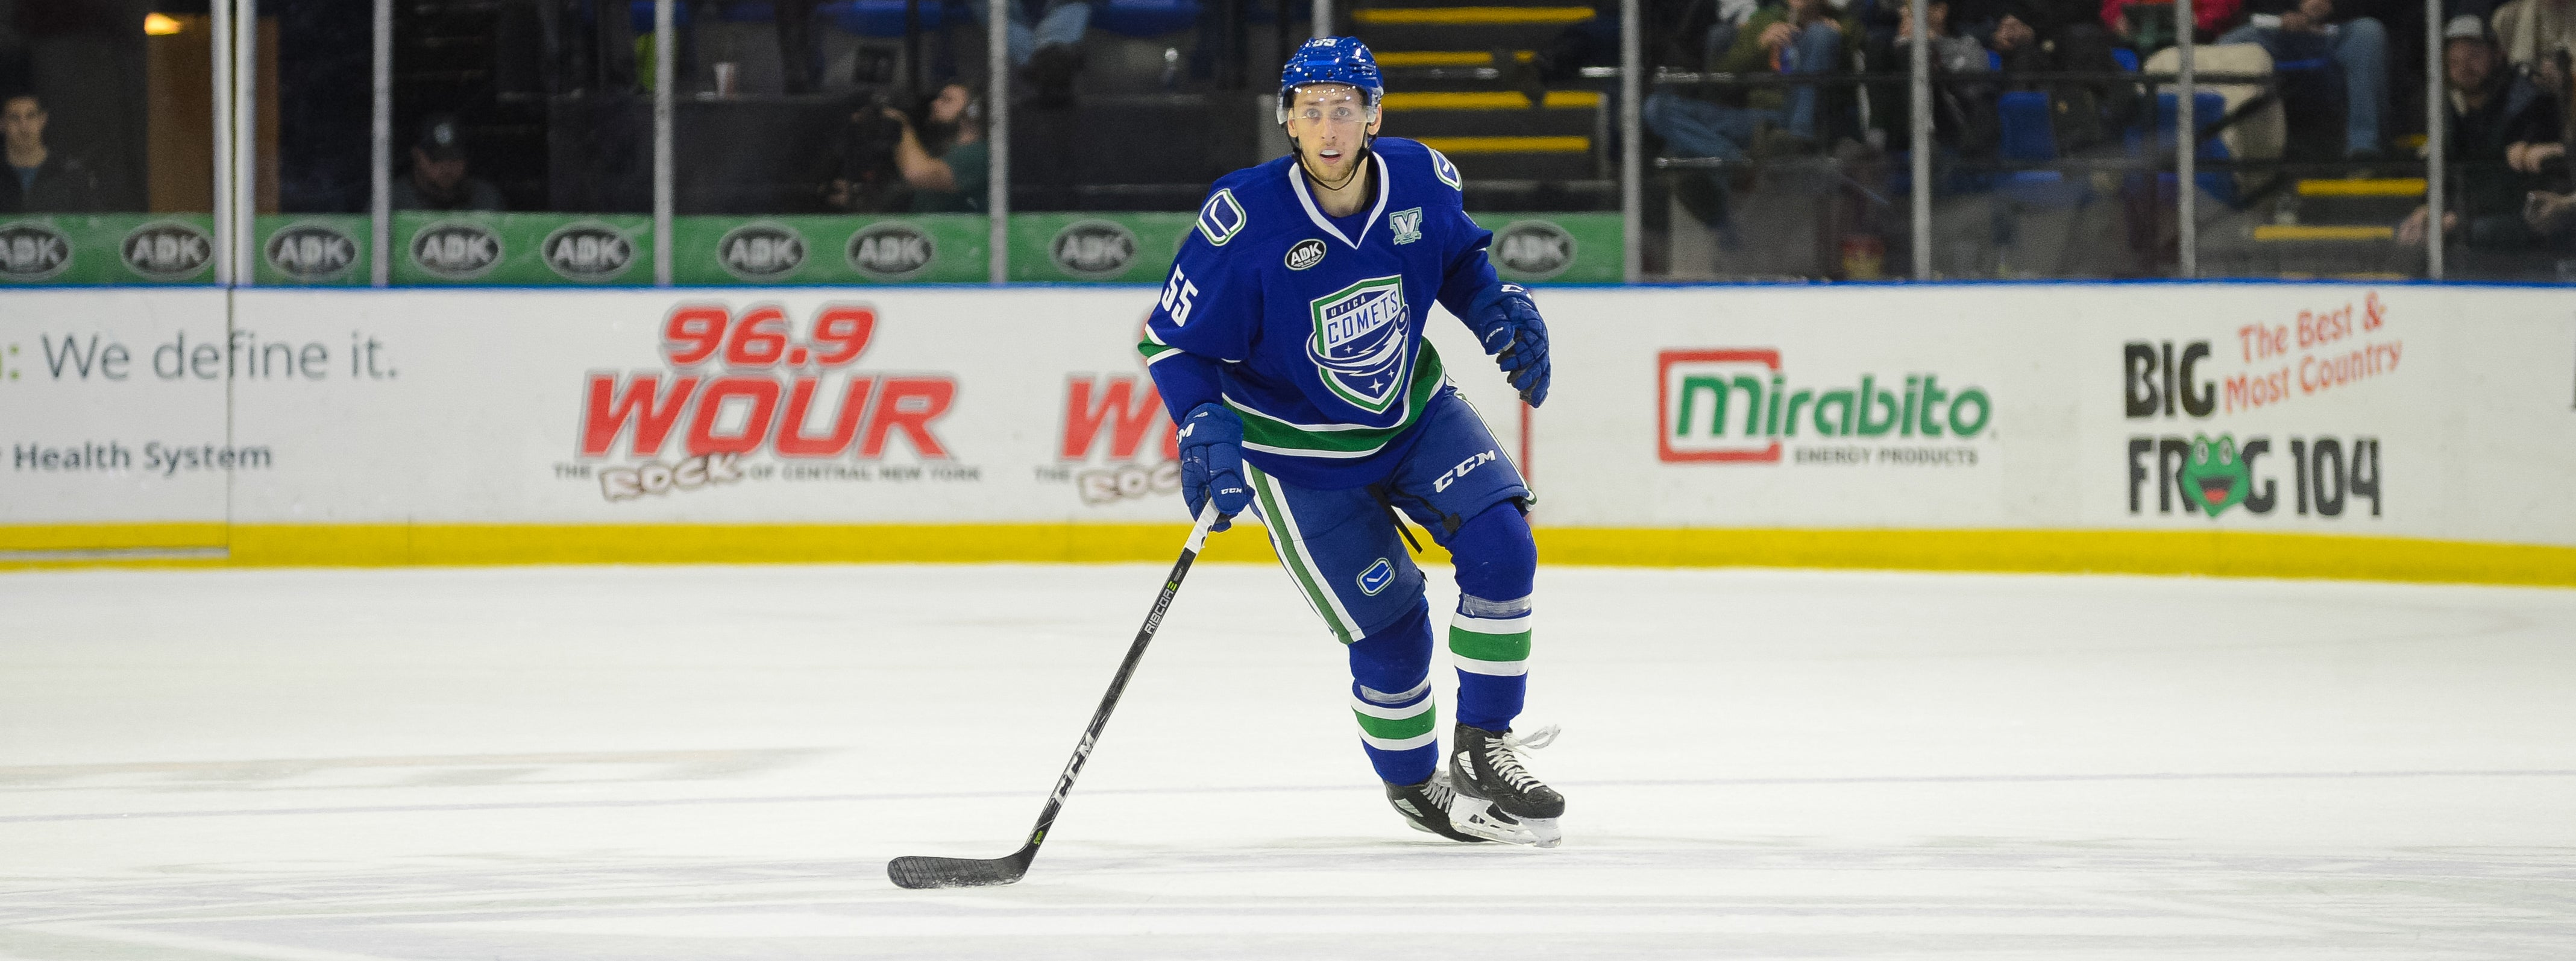 COMETS TOP DEVILS TO EXTEND POINT STREAK TO 14